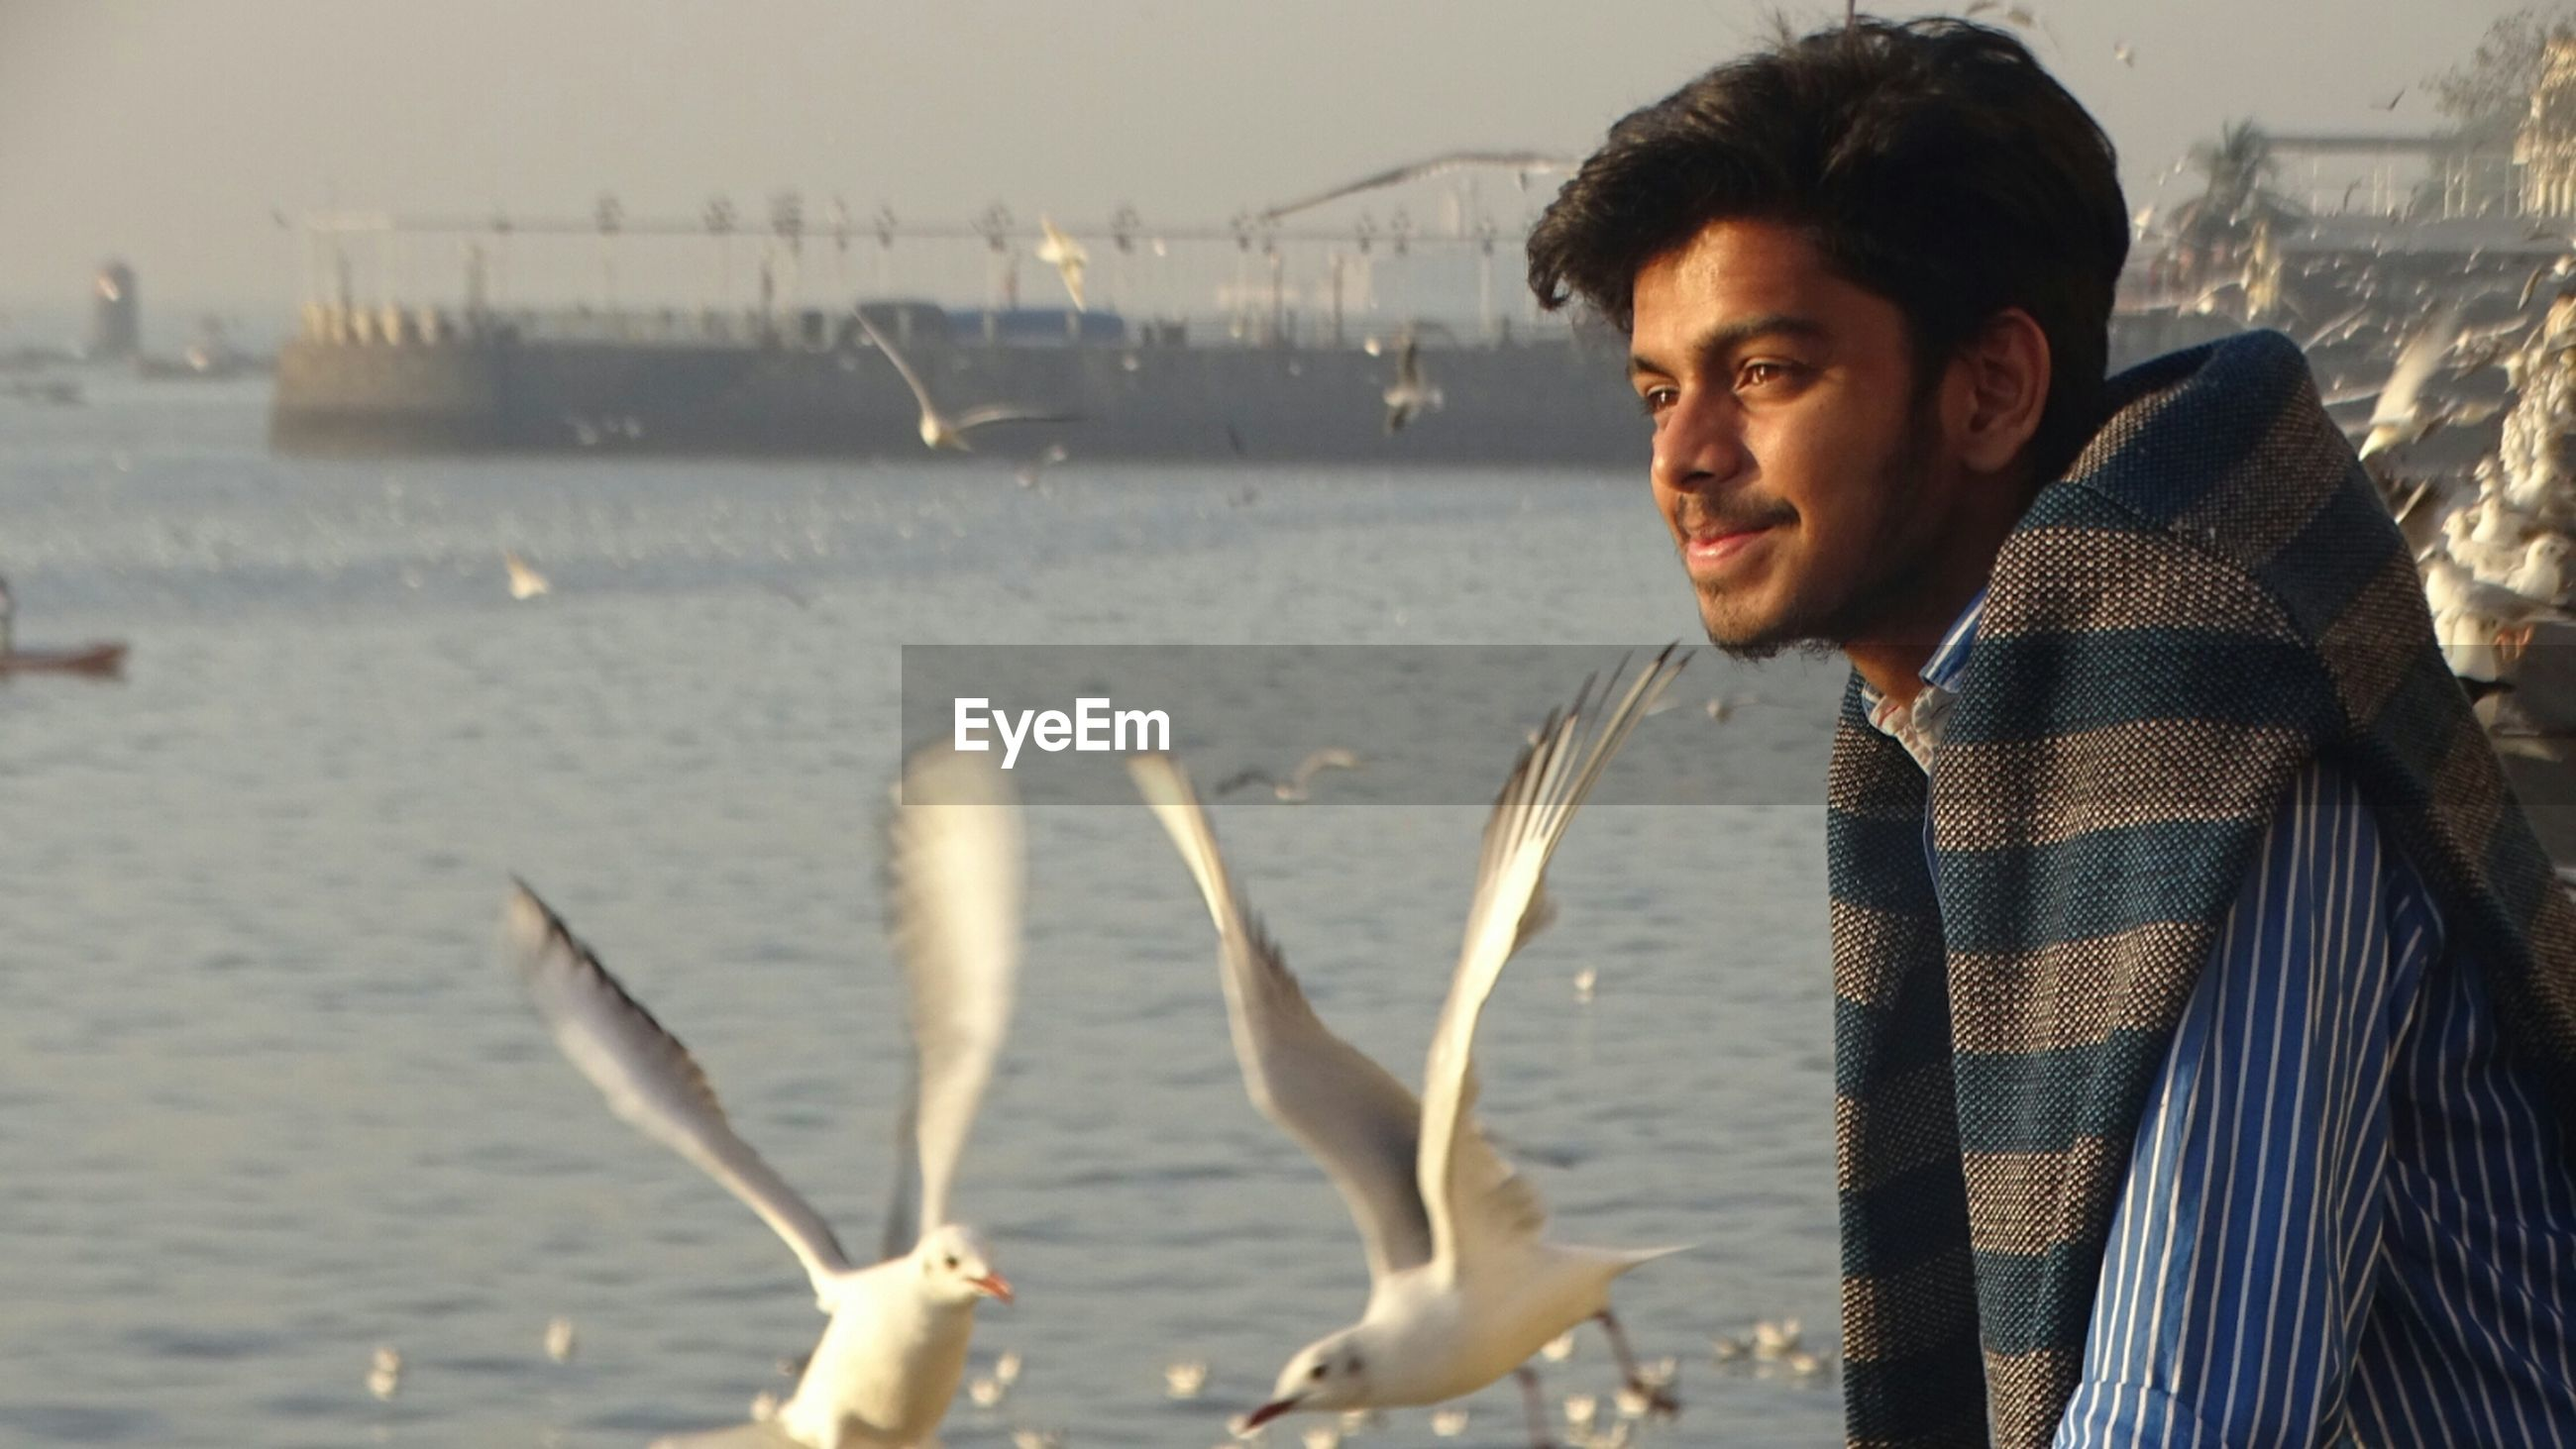 Smiling man looking away with seagulls flying over sea